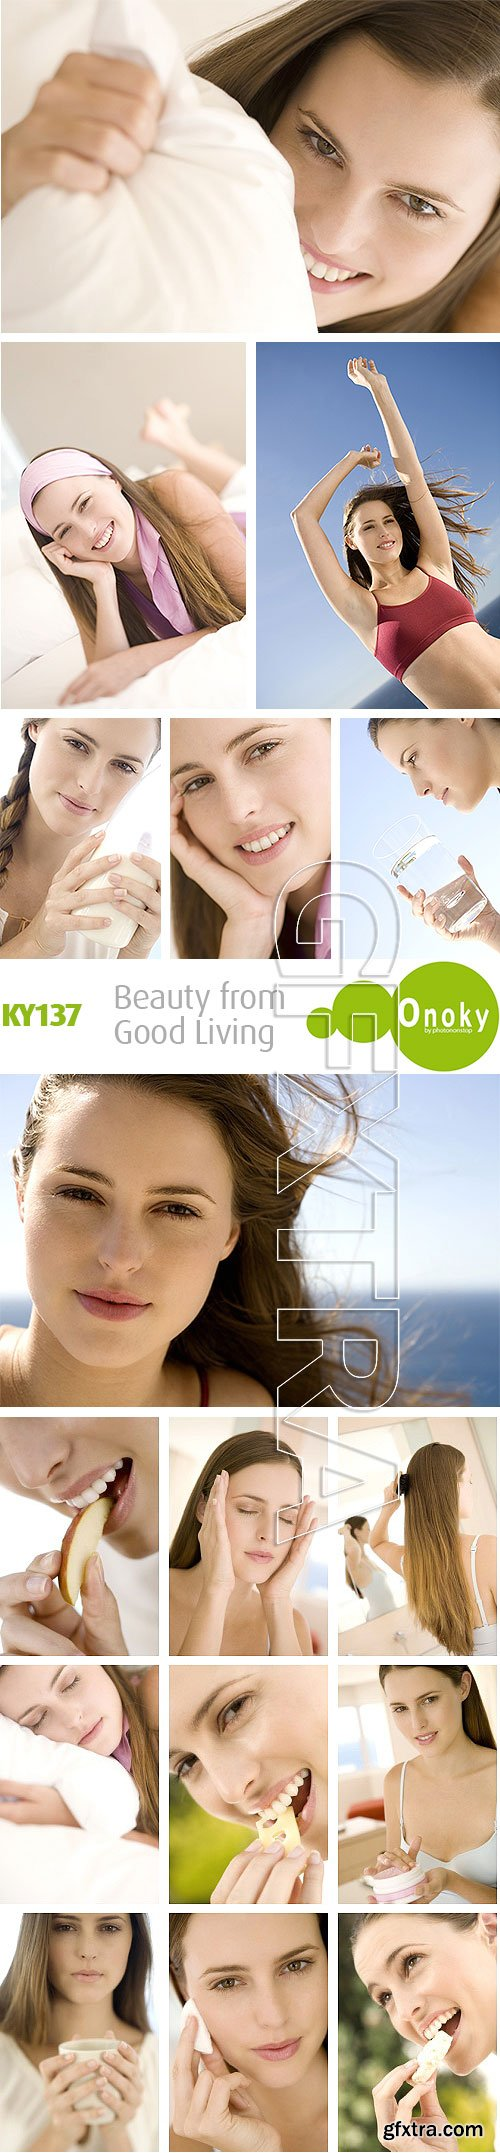 Onoky KY137 Beauty from Good Living